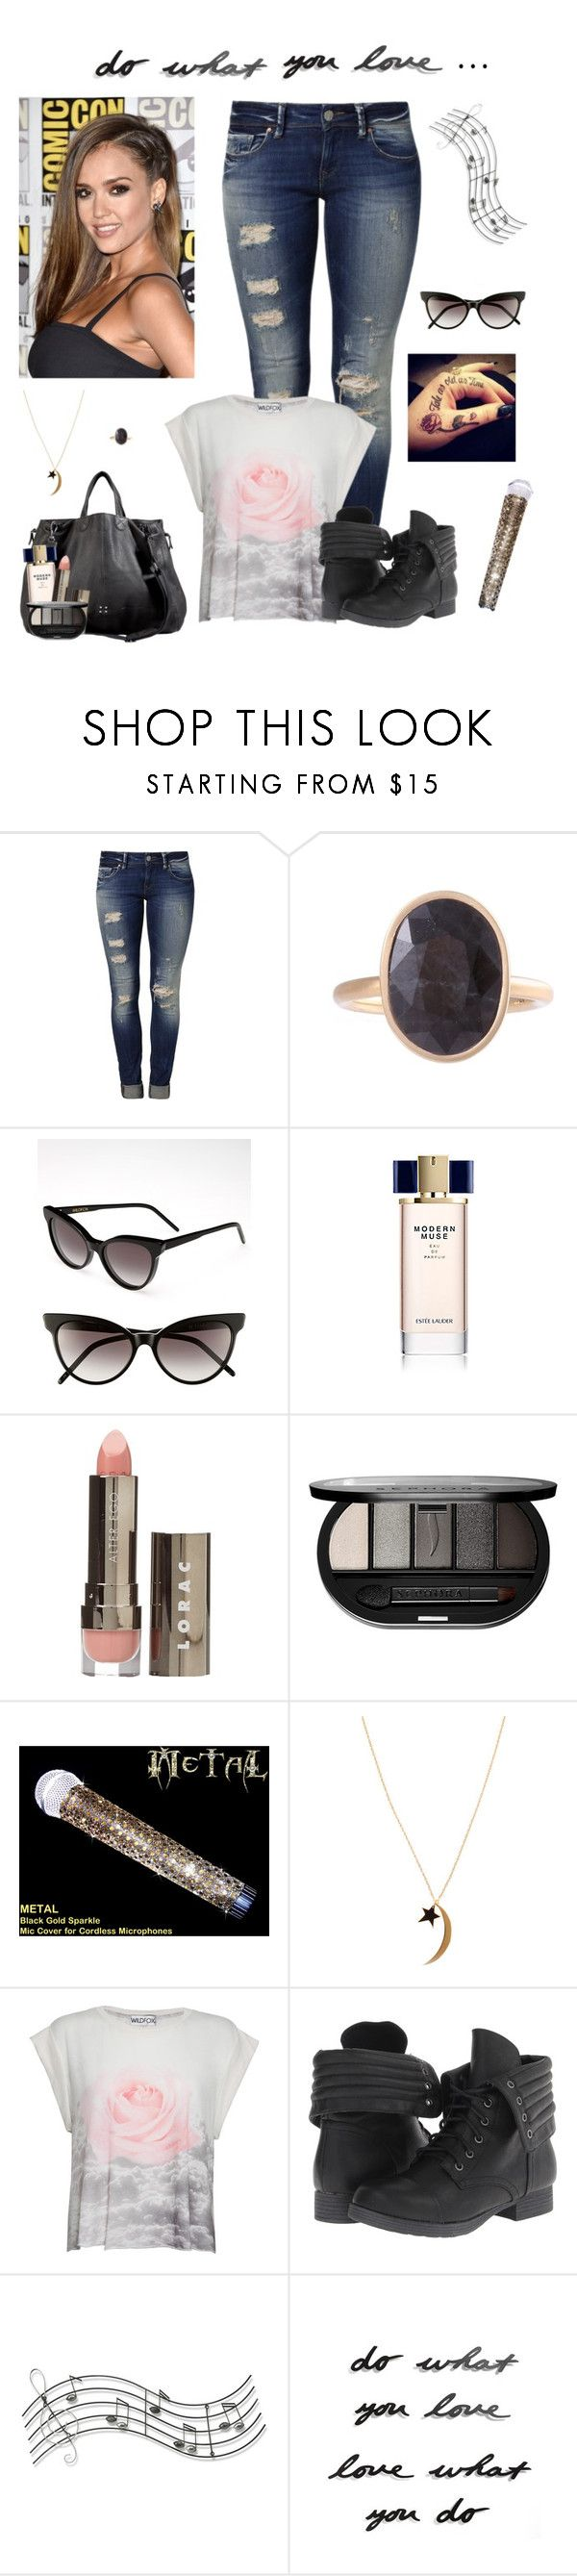 """Let it shine...Milan Turn Up!!"" by shely-brown ❤ liked on Polyvore featuring Mavi, Kelly Wearstler, Wildfox, Estée Lauder, LORAC, Sephora Collection, Jennifer Zeuner, Pink & Pepper, Music Notes and Umbra"